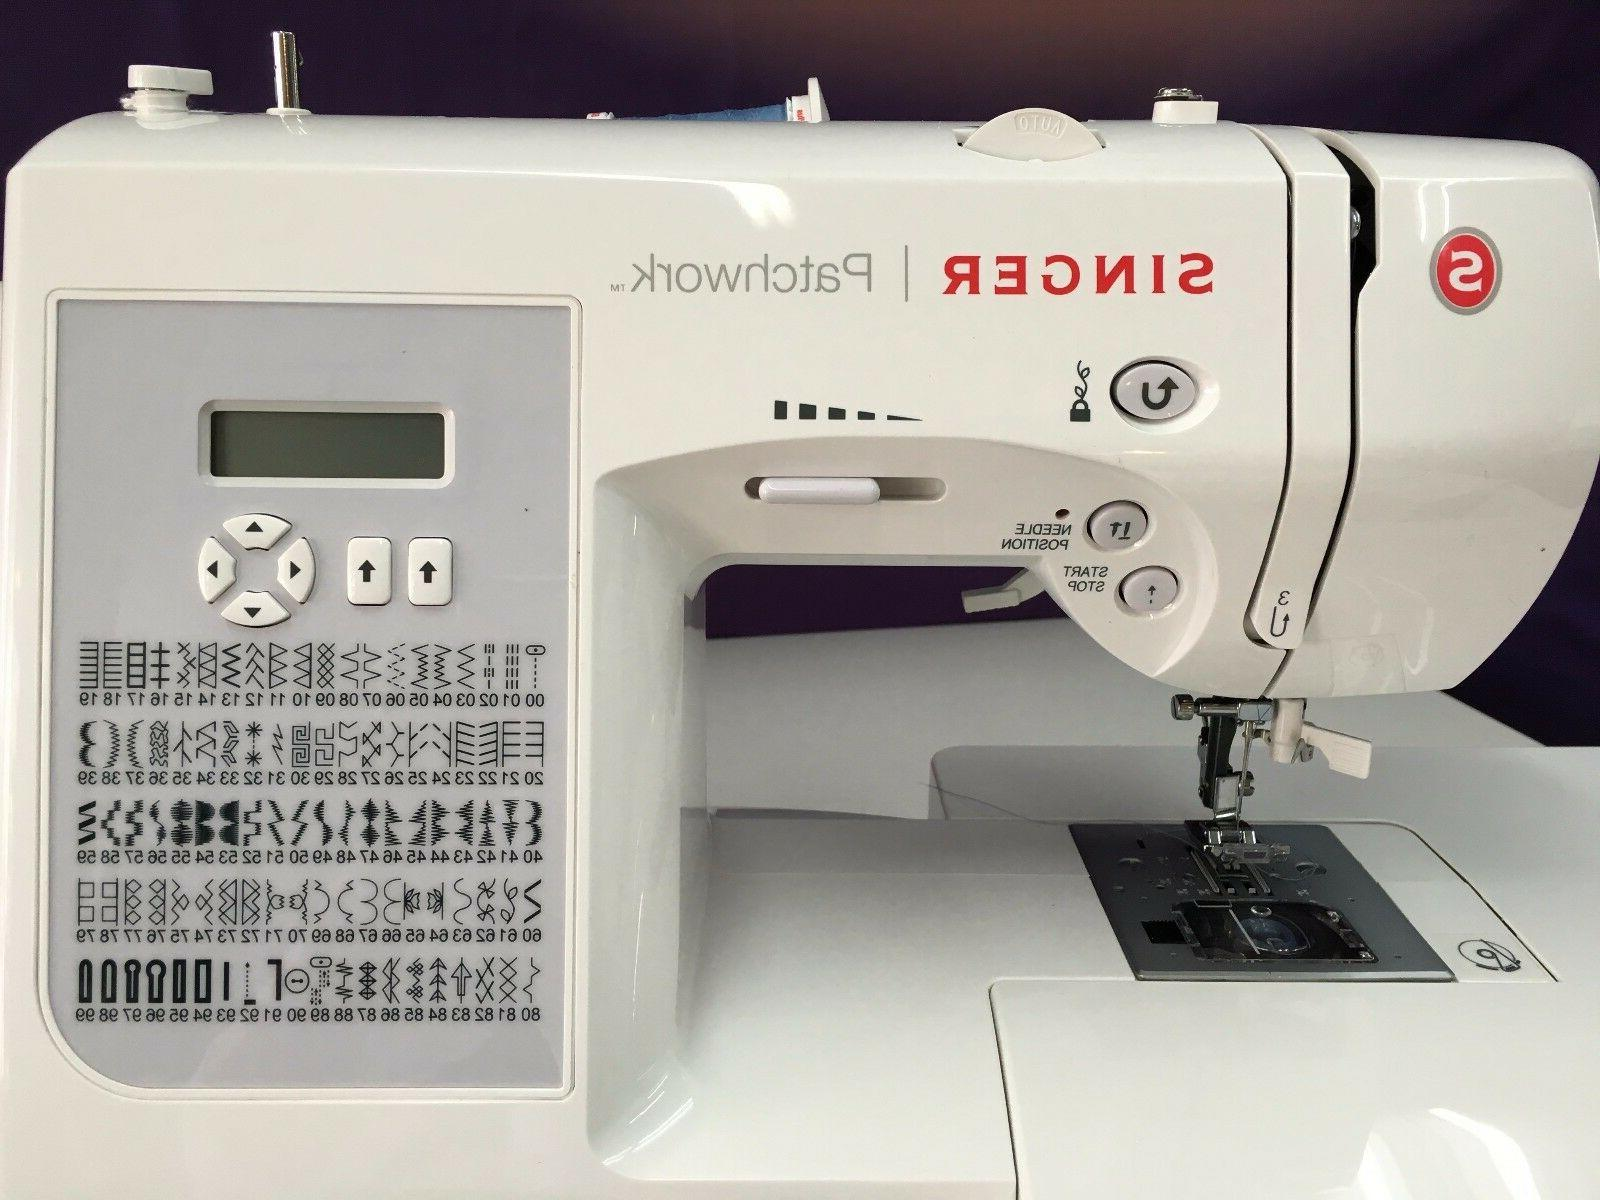 SINGER 7285Q PATCHWORK NEWEST QUILTING /& SEWING MACHINE Authorized Singer Dealer